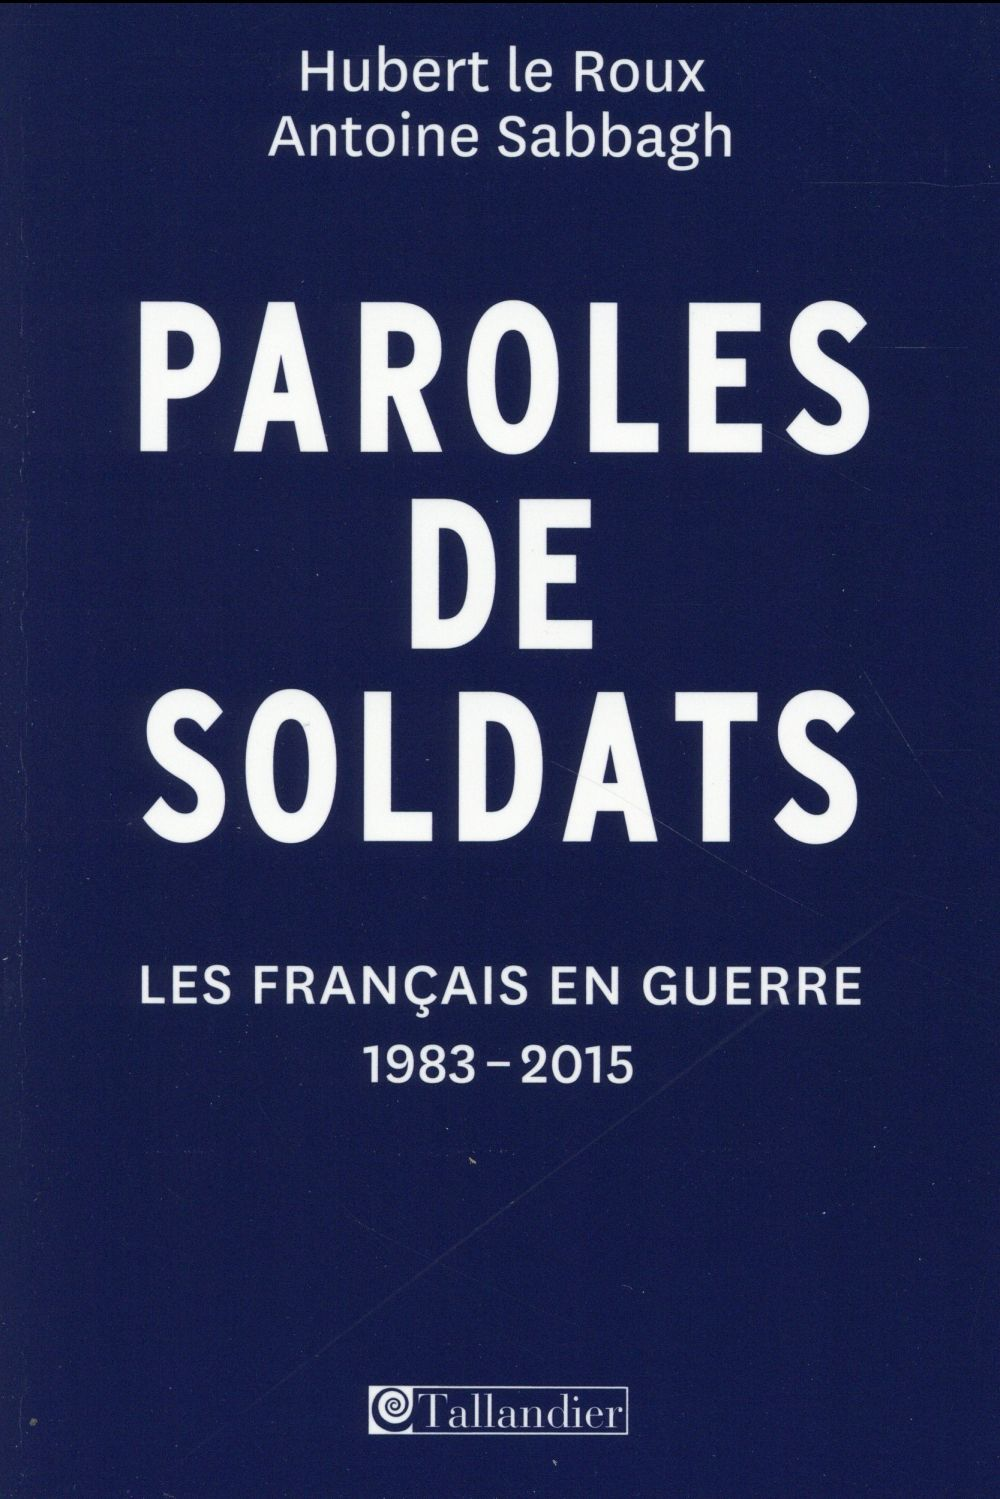 Paroles de soldats ; les Français en guerre, 1983-2015